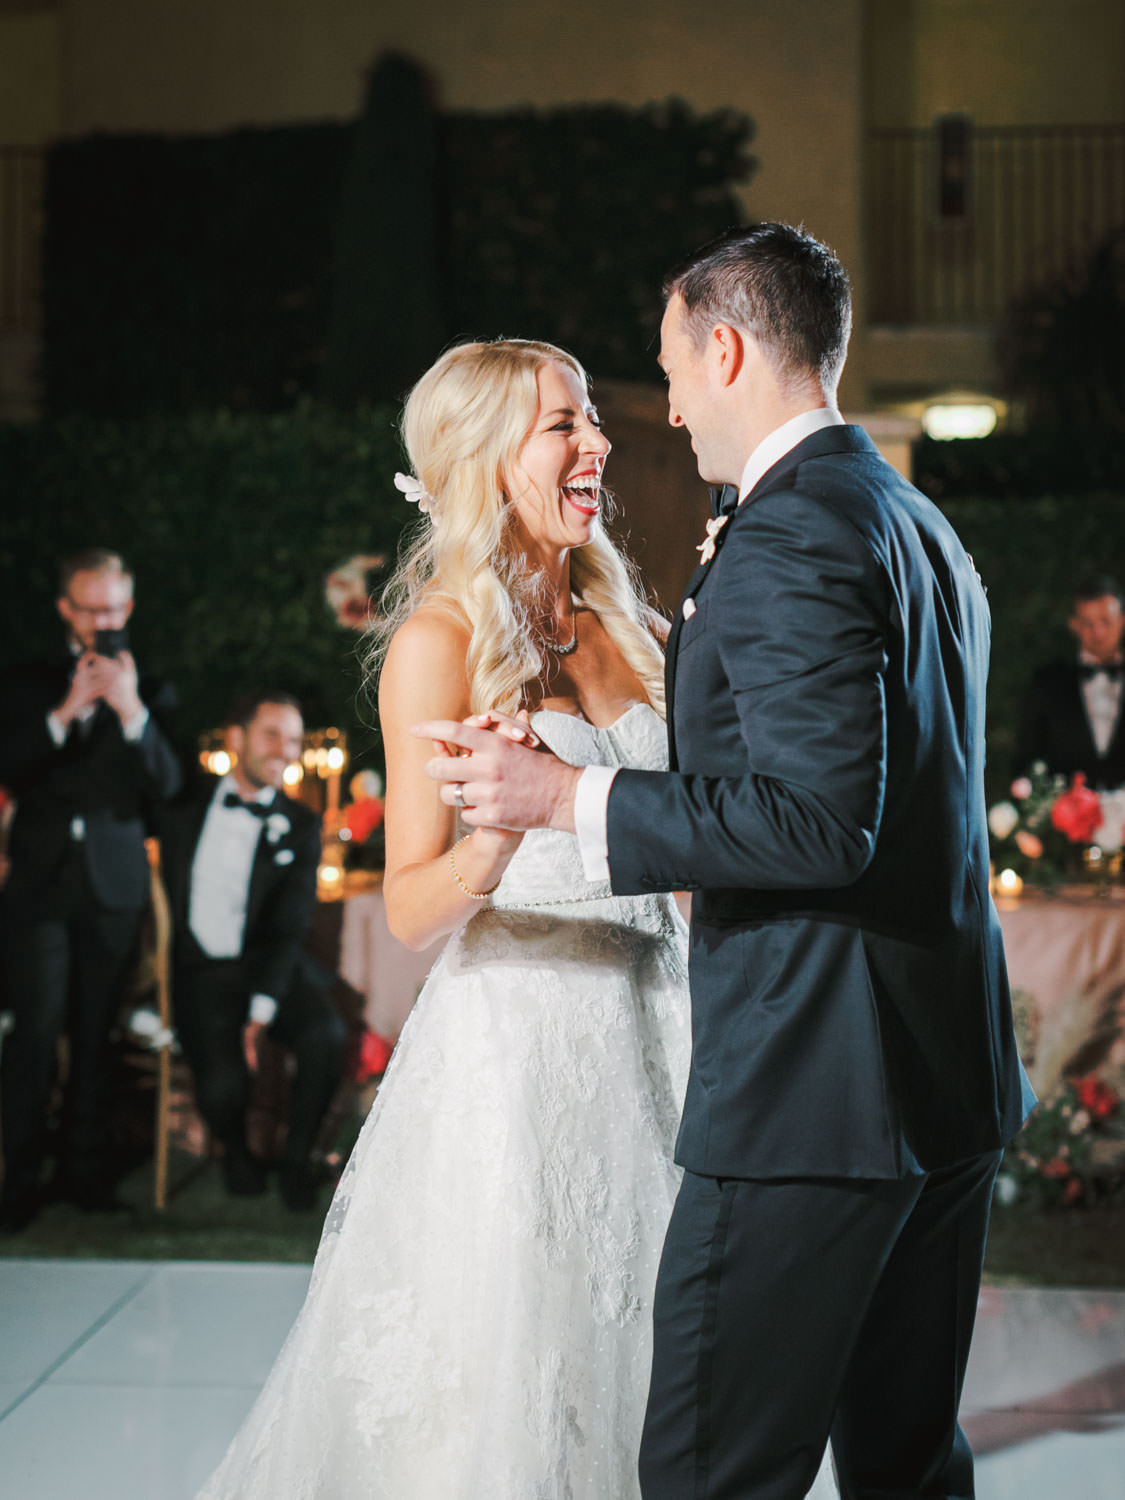 Bride and groom laughing during first dance. Miramonte Resort wedding reception. Photography by Cavin Elizabeth.